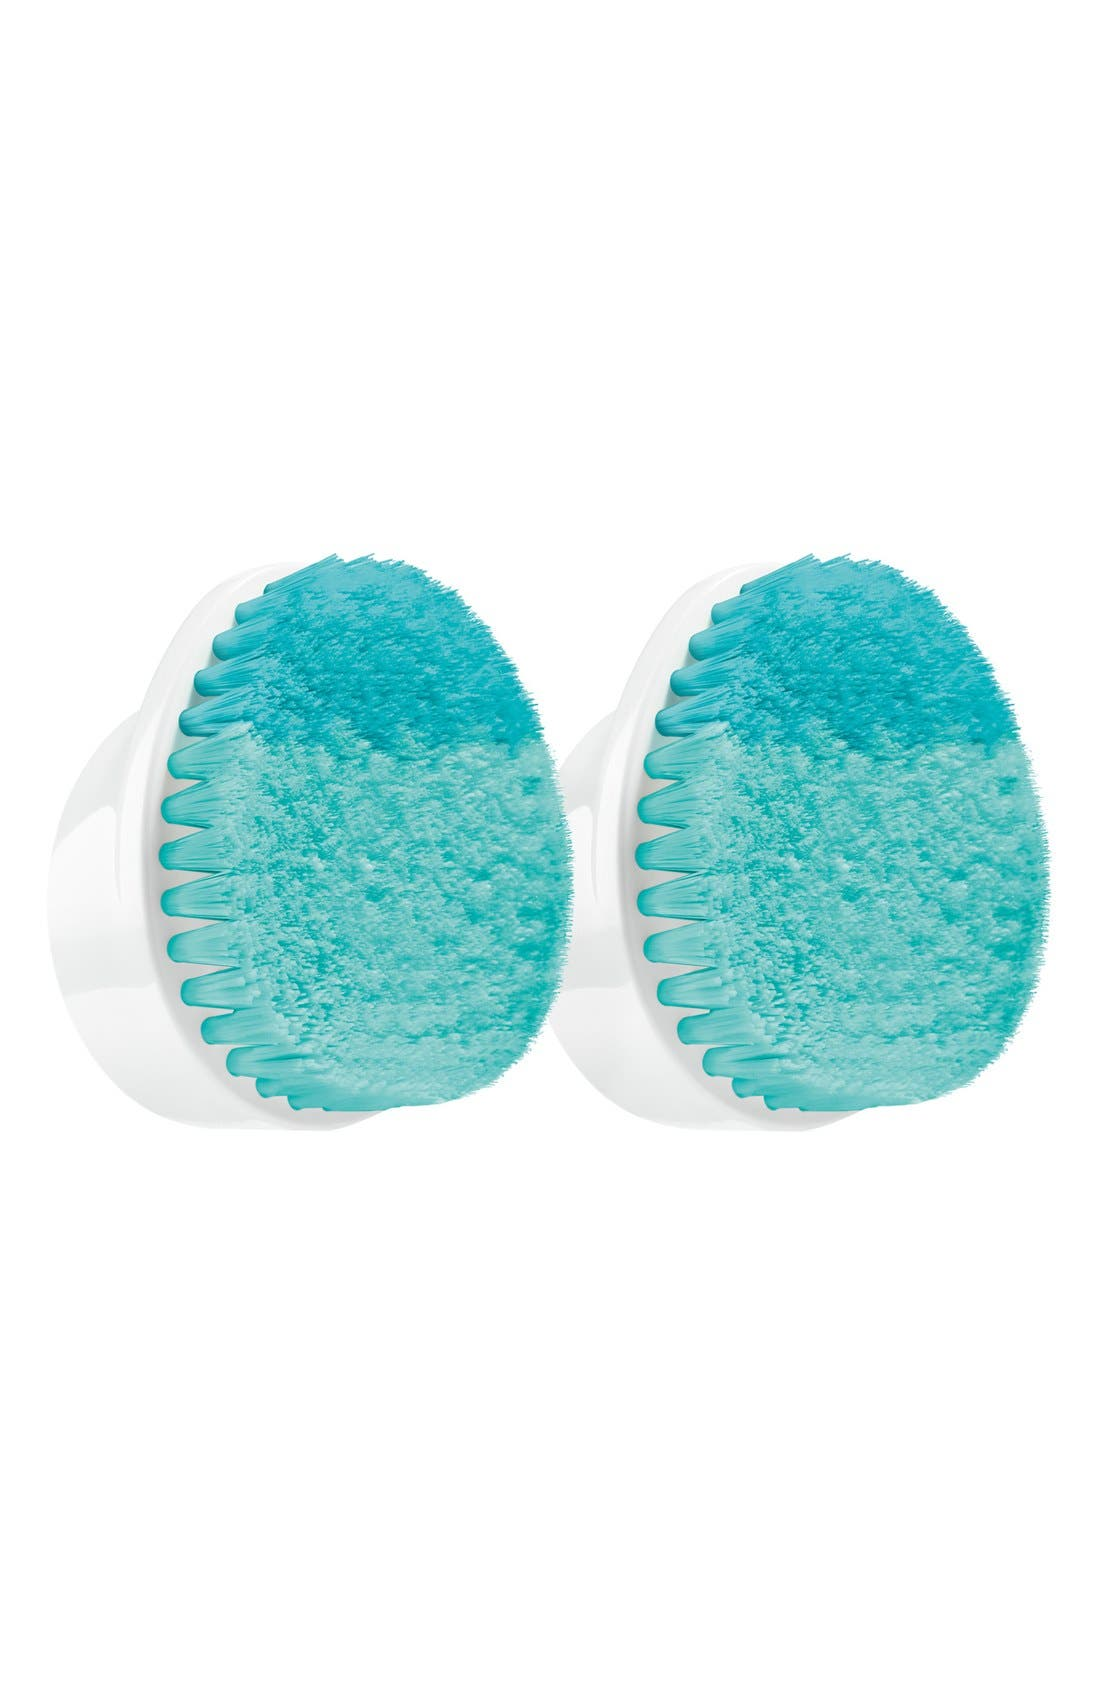 Clinique 'Acne Solutions' Deep Cleansing Brush Head (2-Pack)